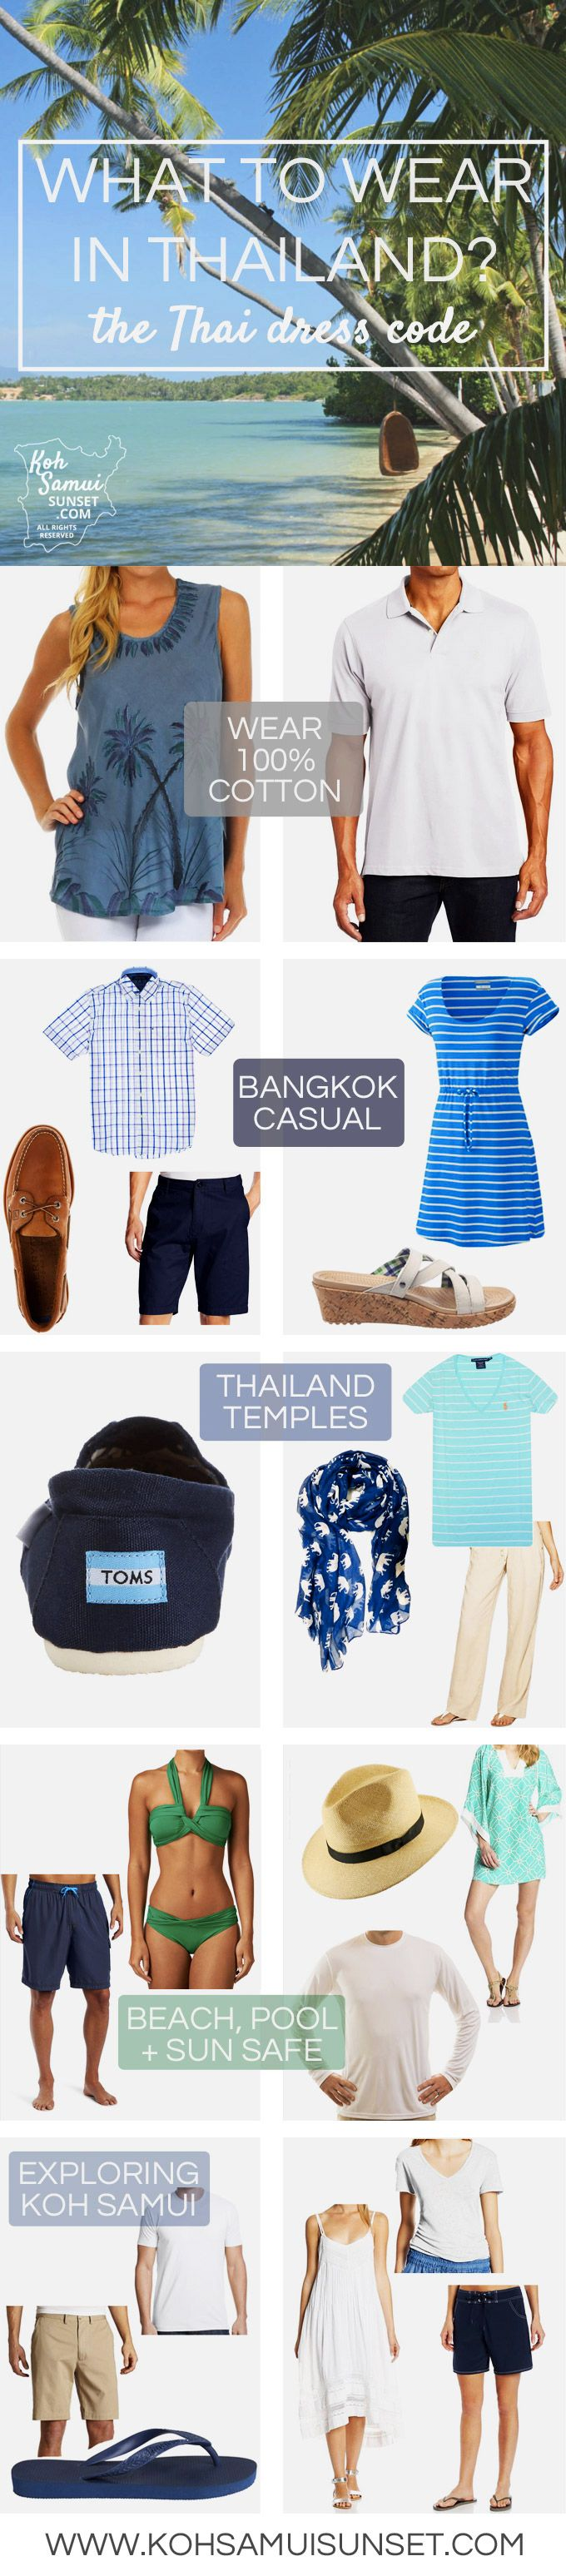 What to wear in Thailand? Learn the Thailand dress code in our 5-part 'What to Wear in Thailand' series: (1) what to wear generally, (2) what to wear at night, (3) what shoes to wear, (4) what to wear in rainy season and (5) what to wear to a wedding in Thailand // #Thailand #Packing #TravelTip // http://www.kohsamuisunset.com/what-to-wear-in-thailand/